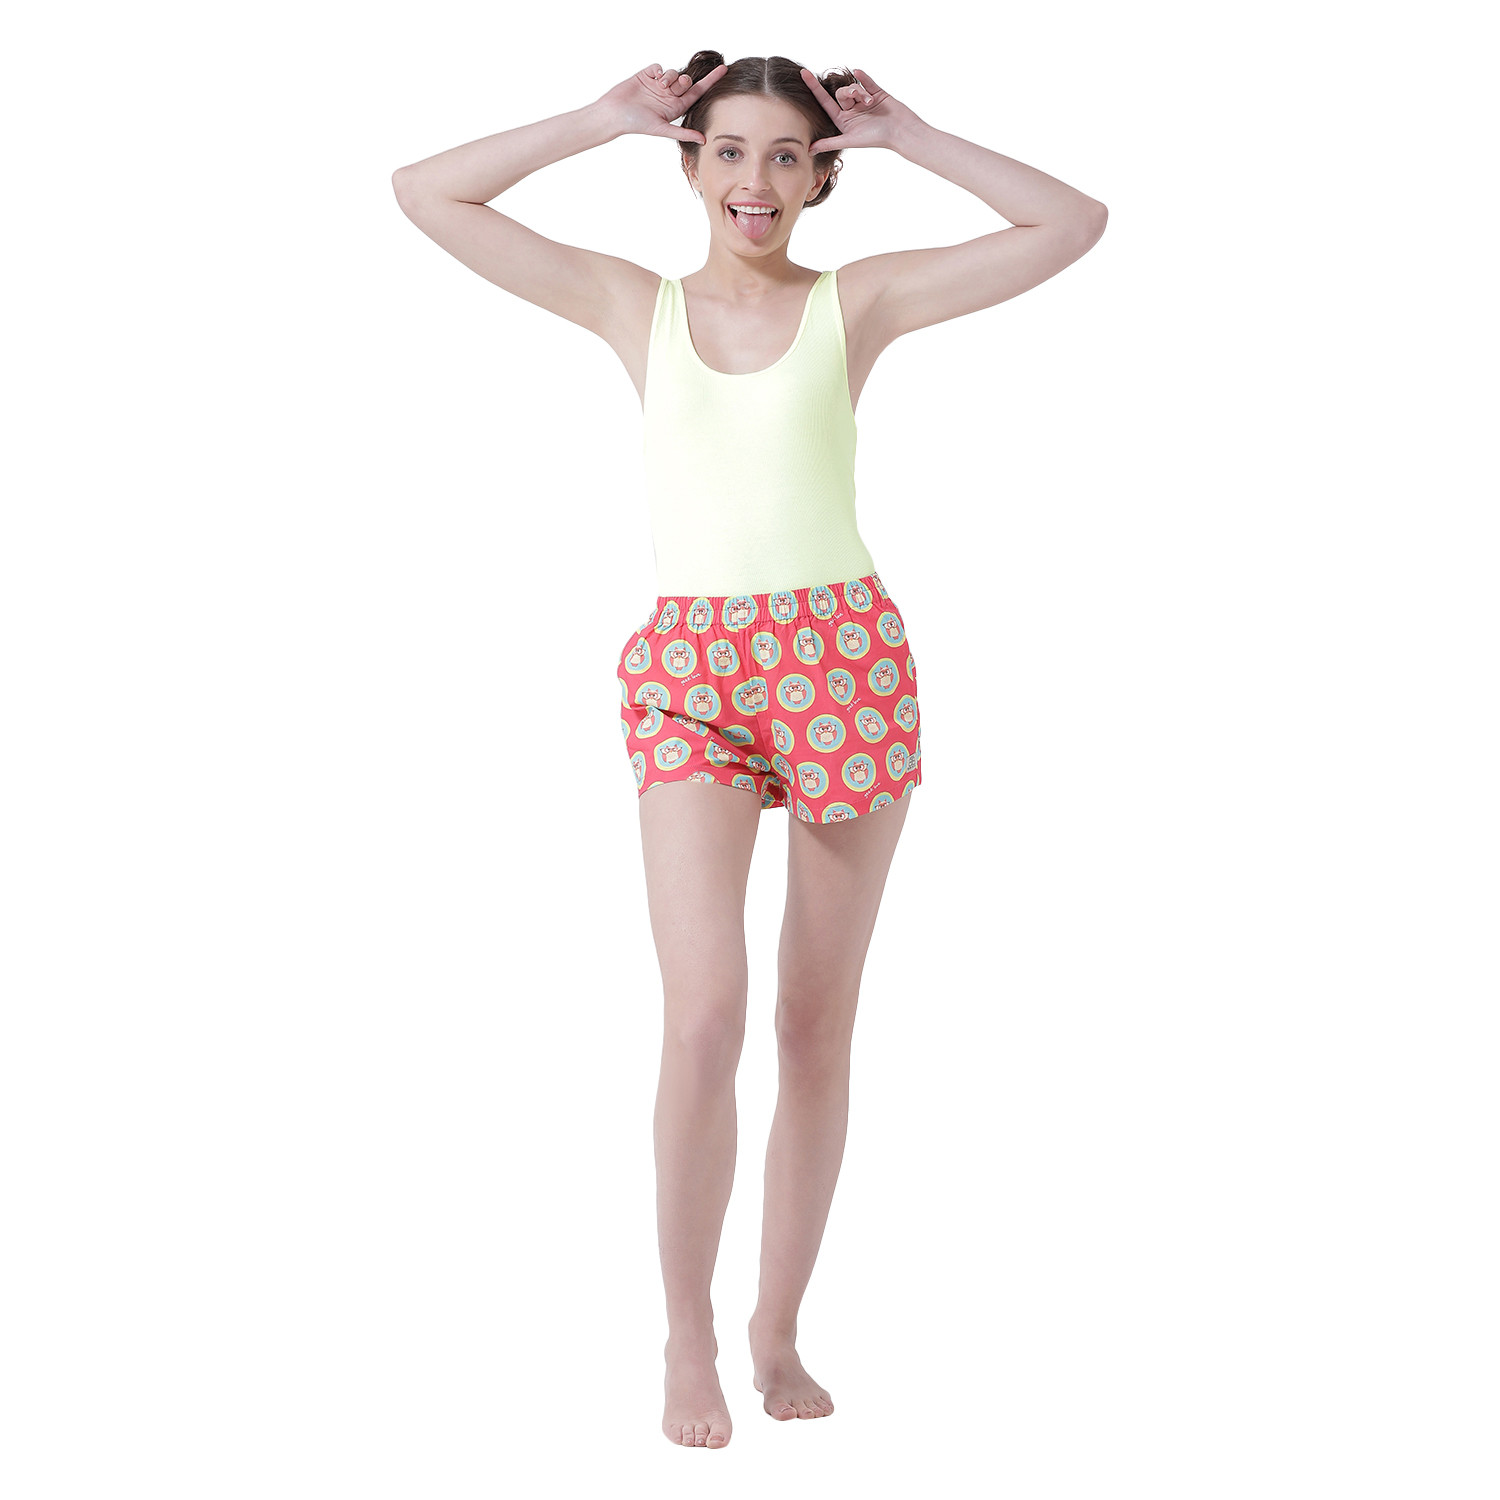 Get Your Geek On Women's Cotton Shorts